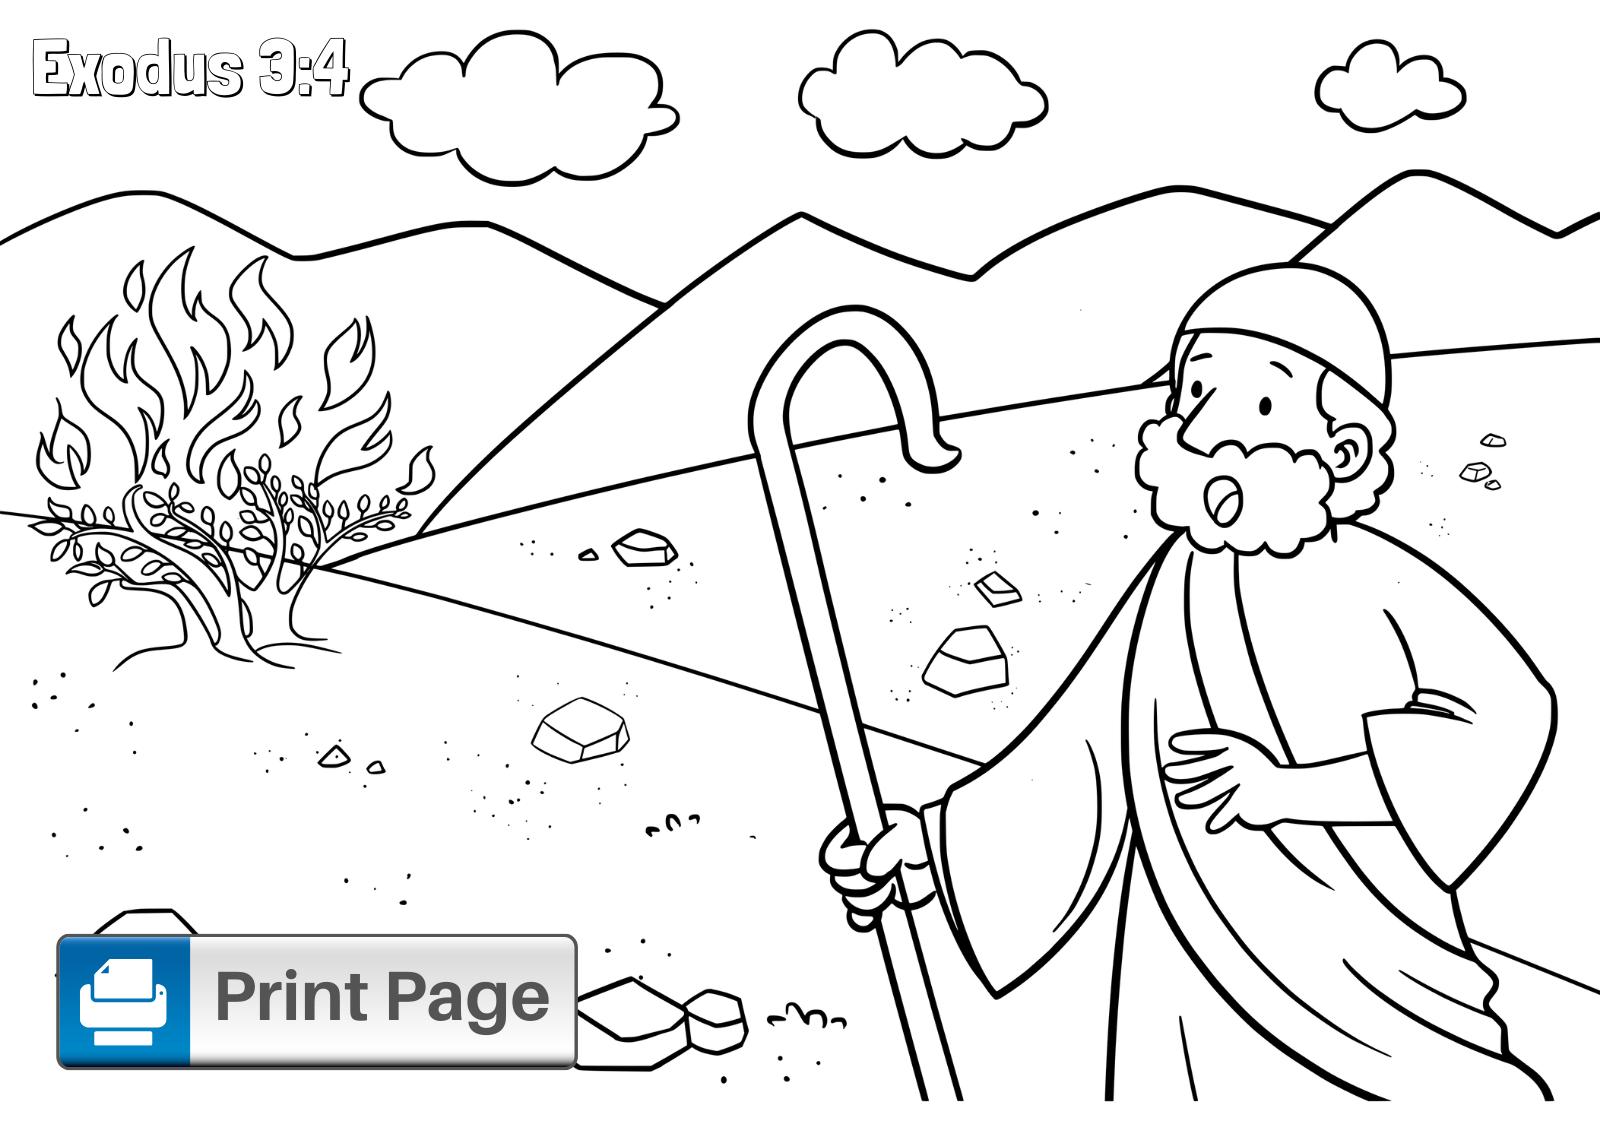 Moses and the Burning Bush Coloring Sheet